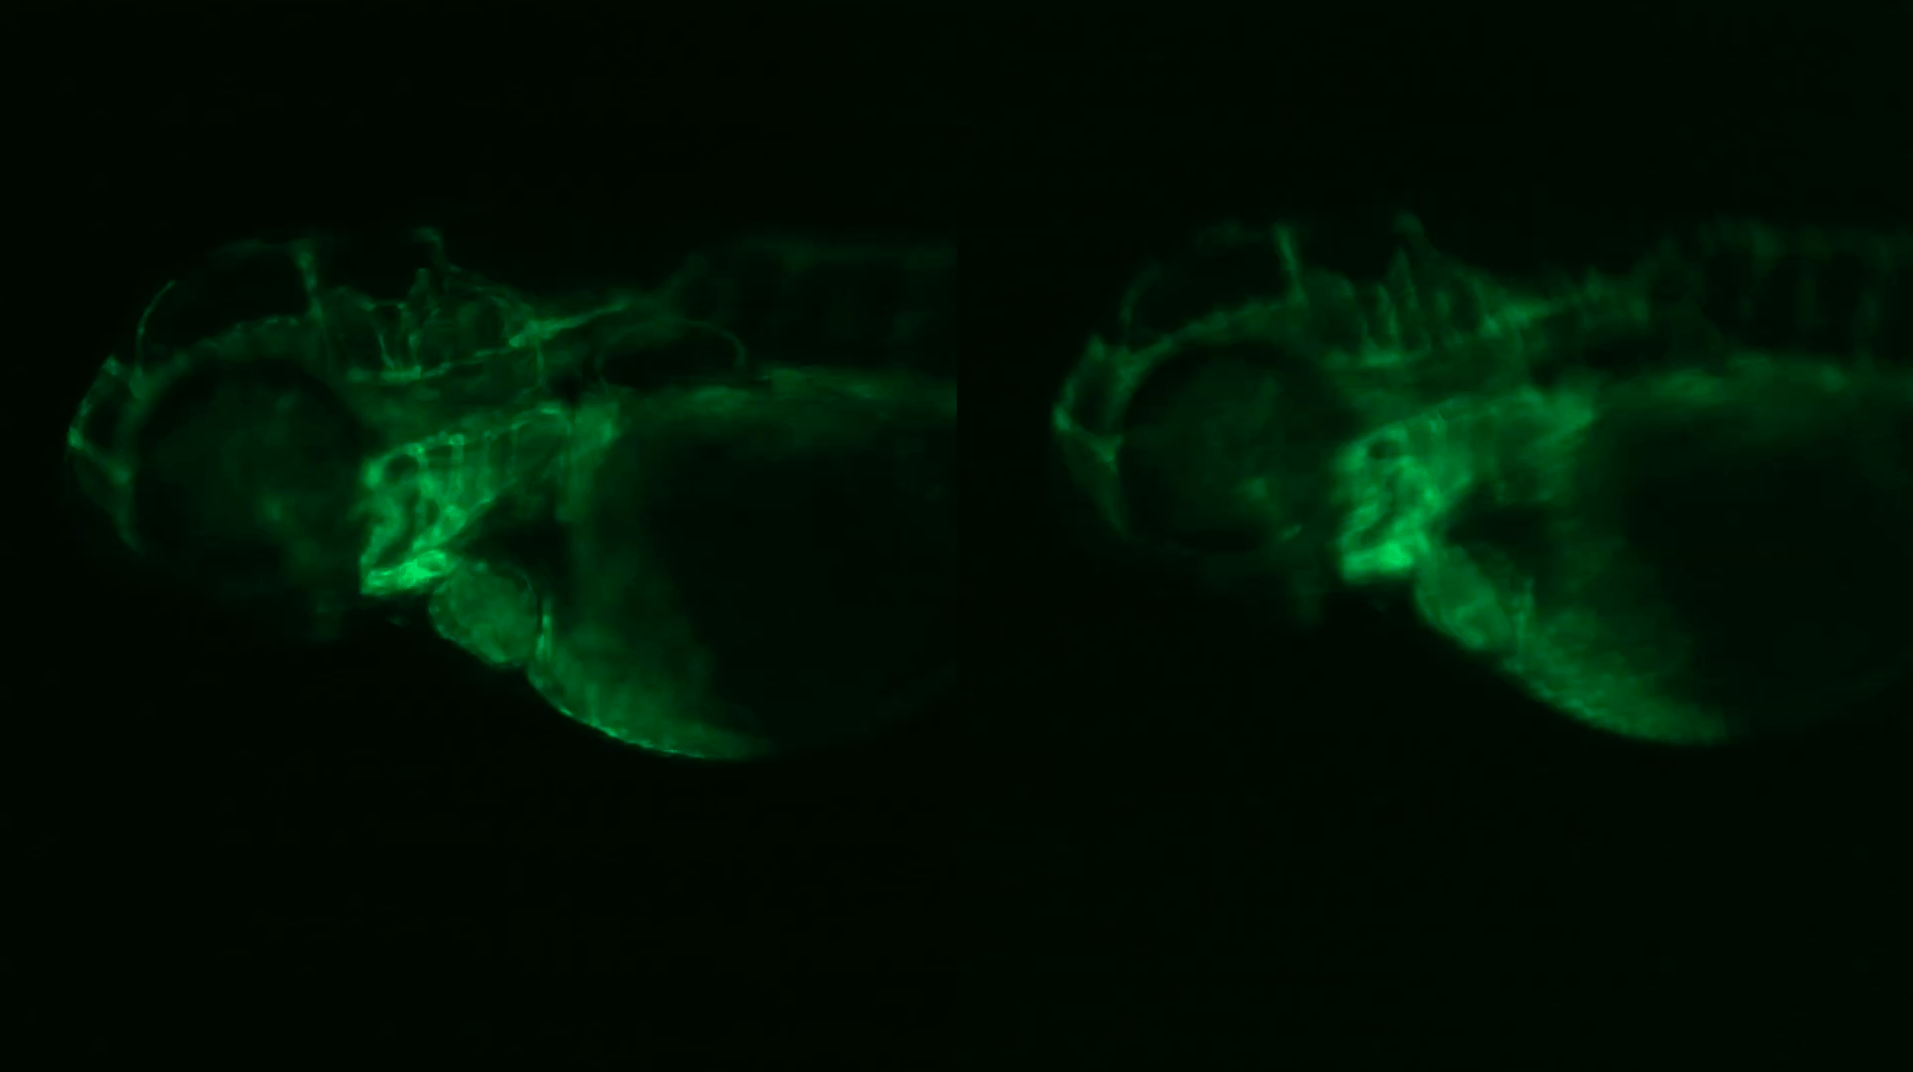 How To Correct Aberration In Stereo Microscopy By Using The Right Objective Lenses